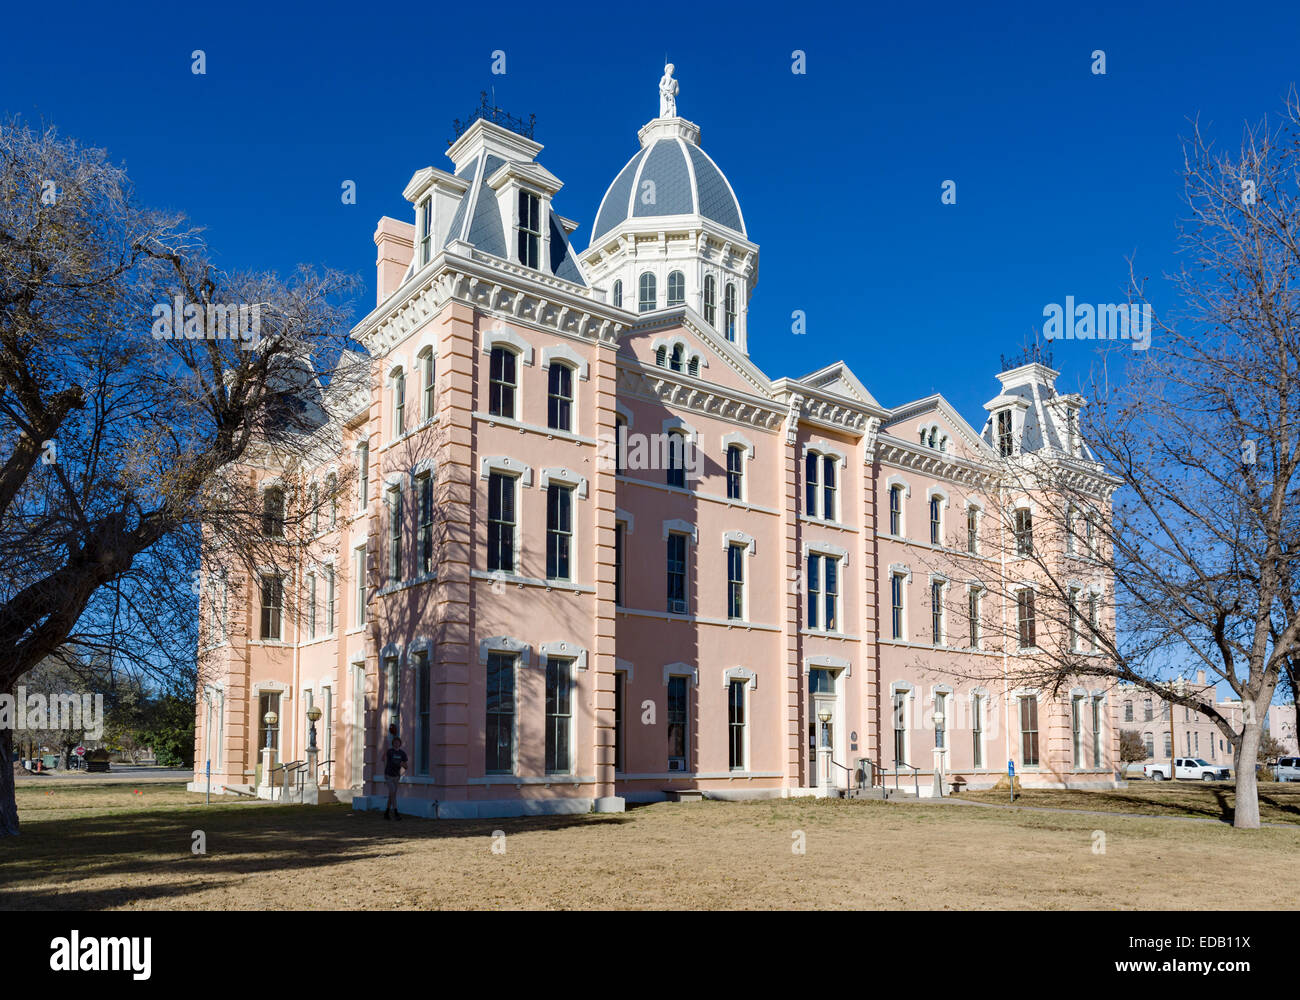 Presidio County Courthouse, Marfa, Texas, USA - Stock Image